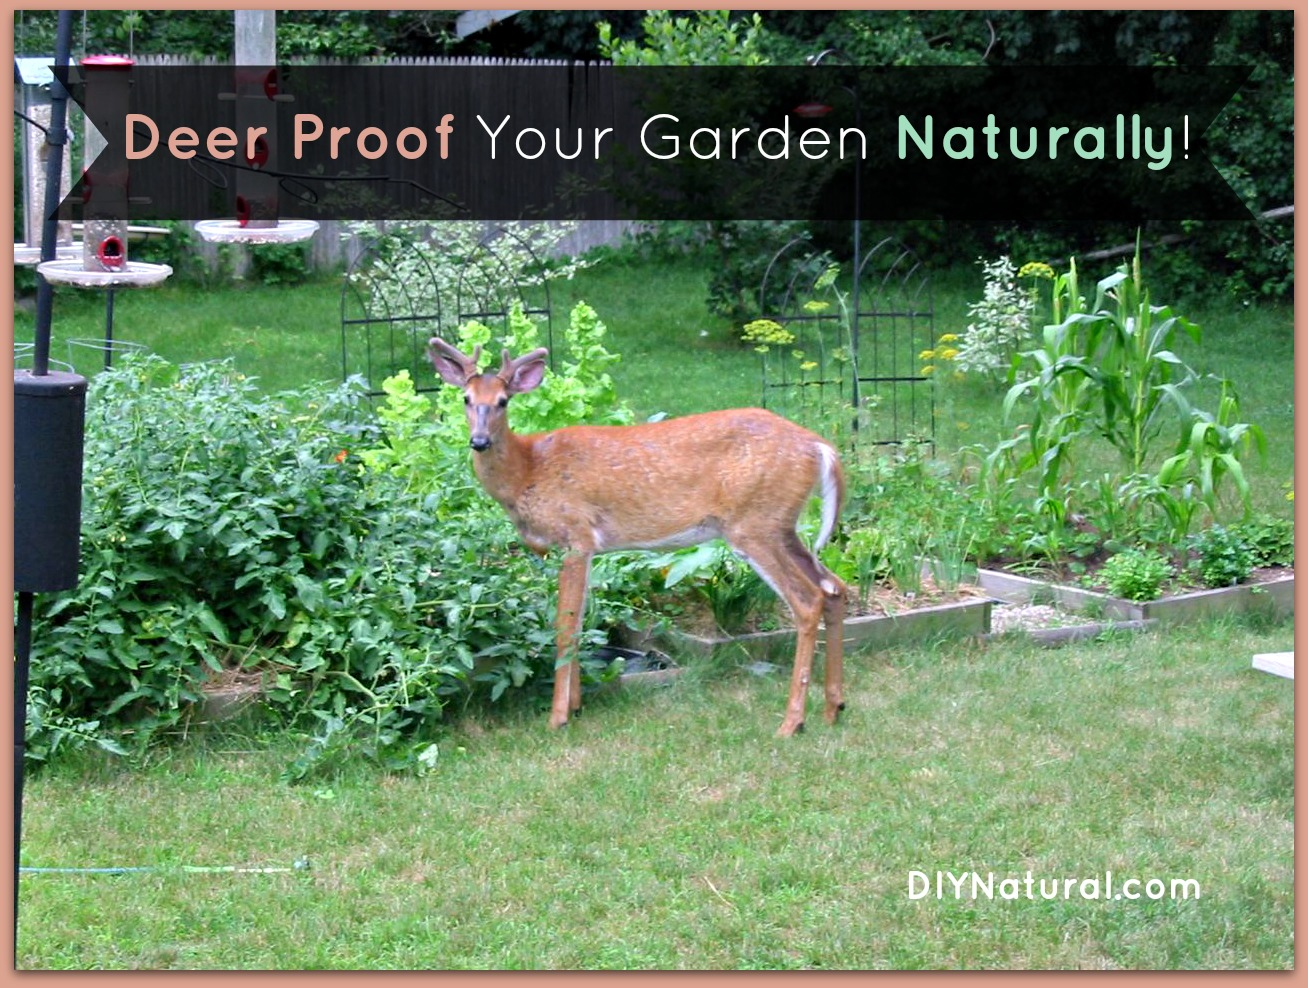 There Are Some Things You Can Do That Will Help Keep The Deer And Other Browsing Critters Away From Your Garden Naturally Without Chemicals